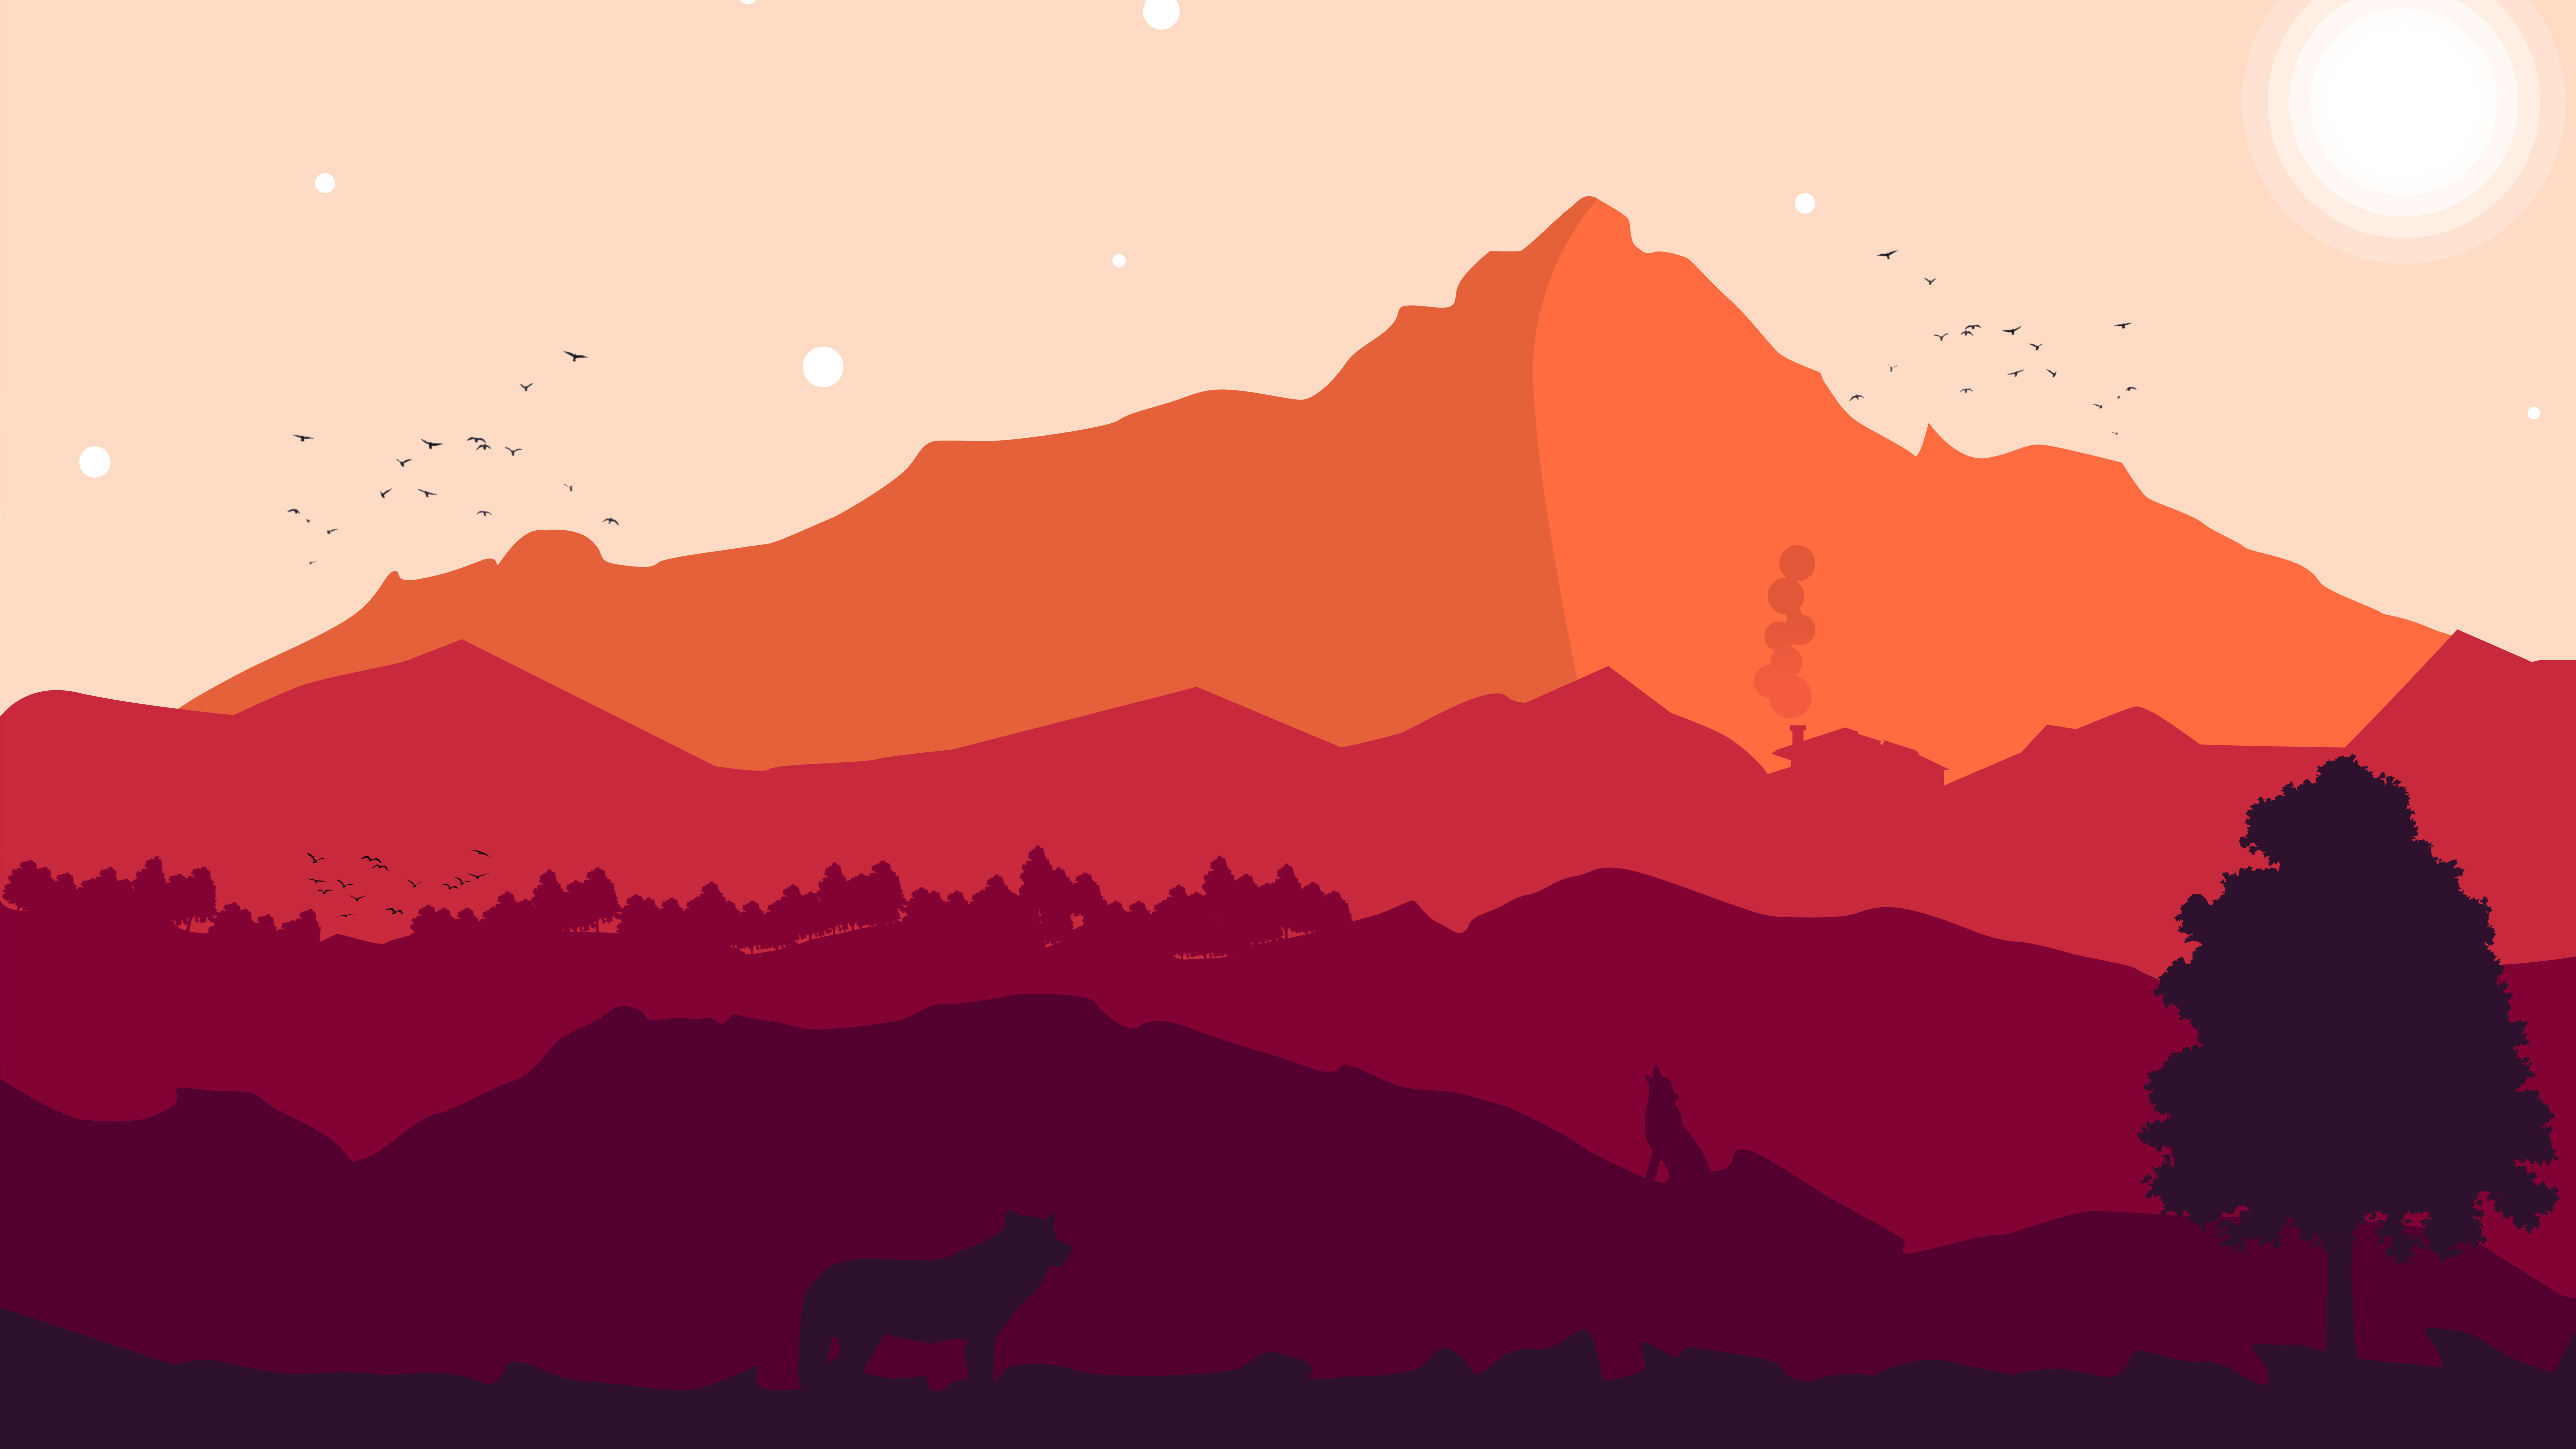 7680x4320 Firewatch 10K 8k HD 4k Wallpapers, Images ...